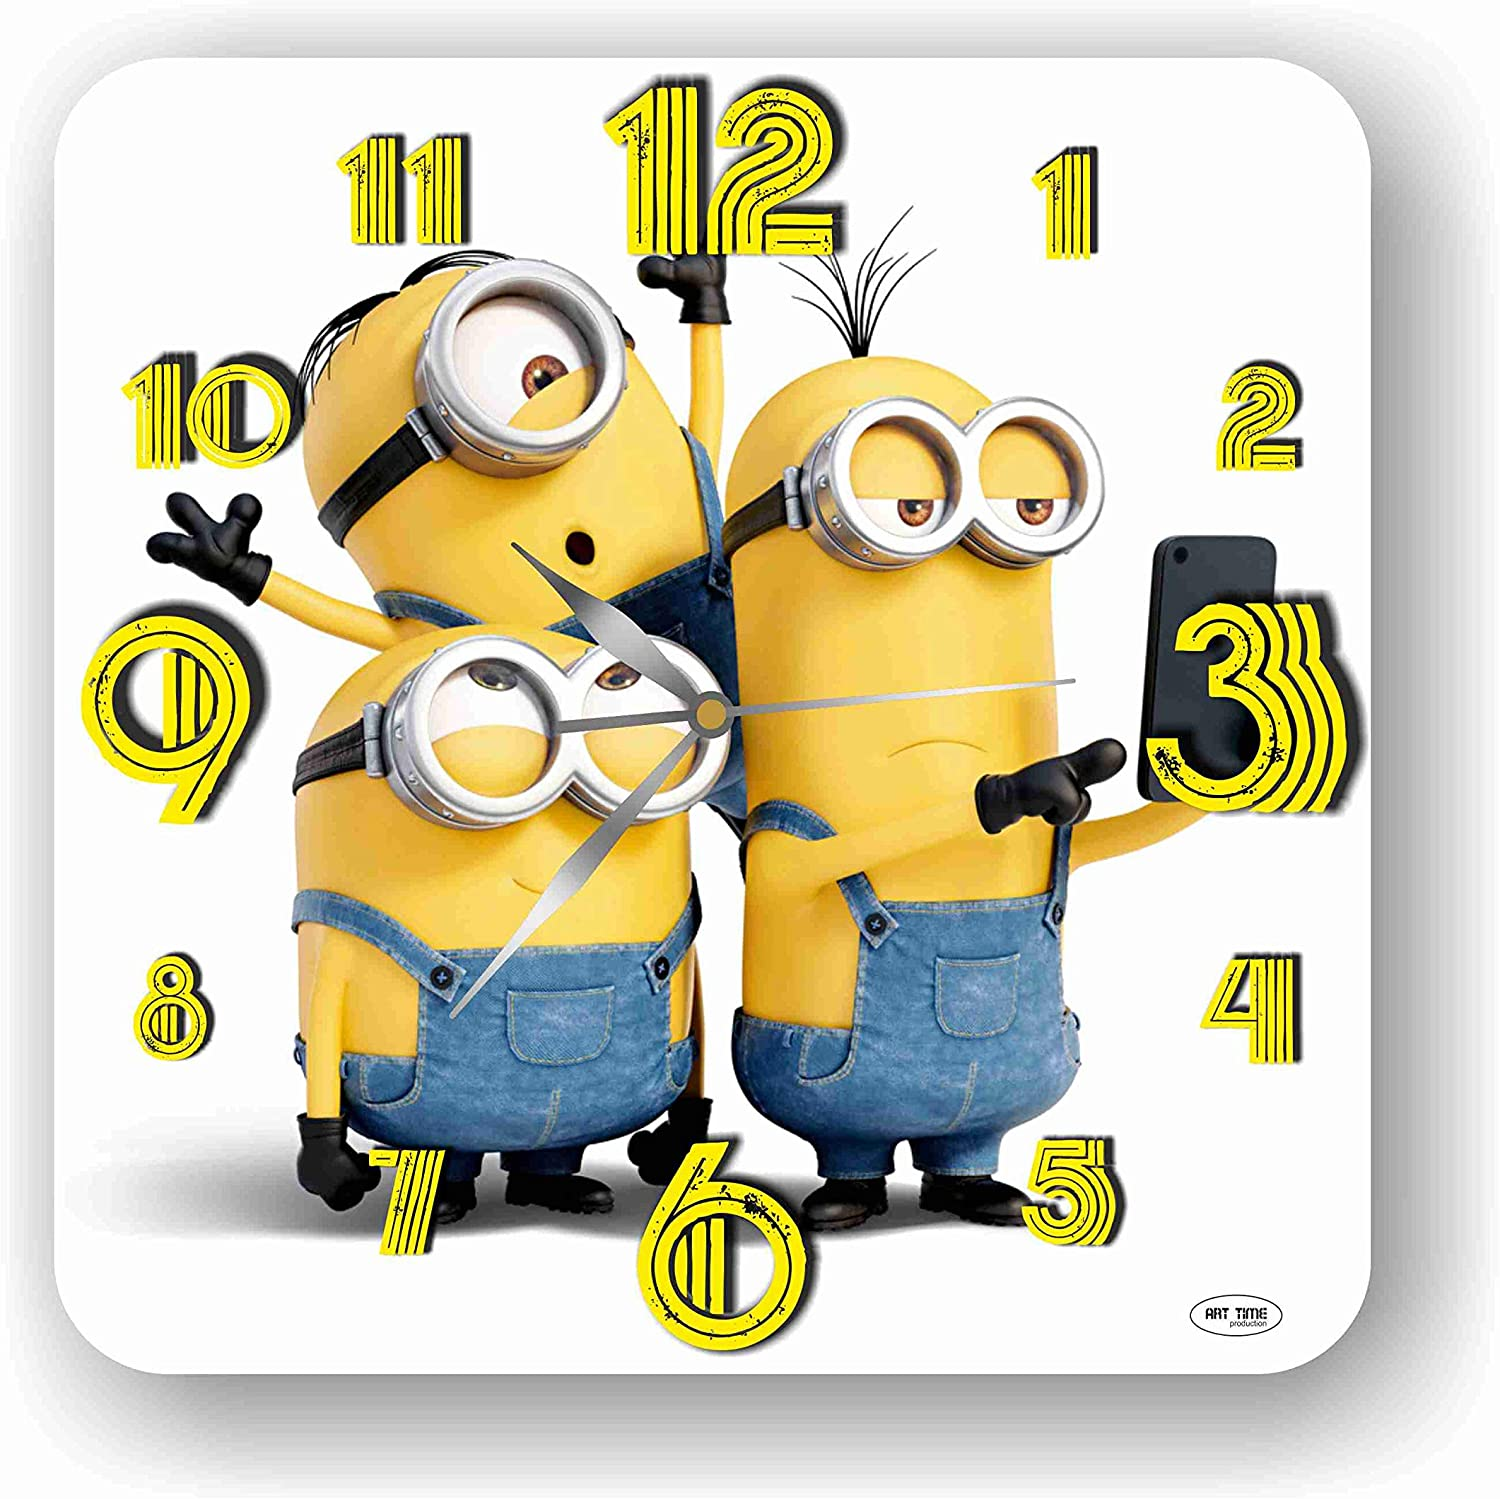 Art time production Minions 11'' Handmade Wall Clock - Get Unique décor for Home or Office – Best Gift Ideas for Kids, Friends, Parents and Your Soul Mates